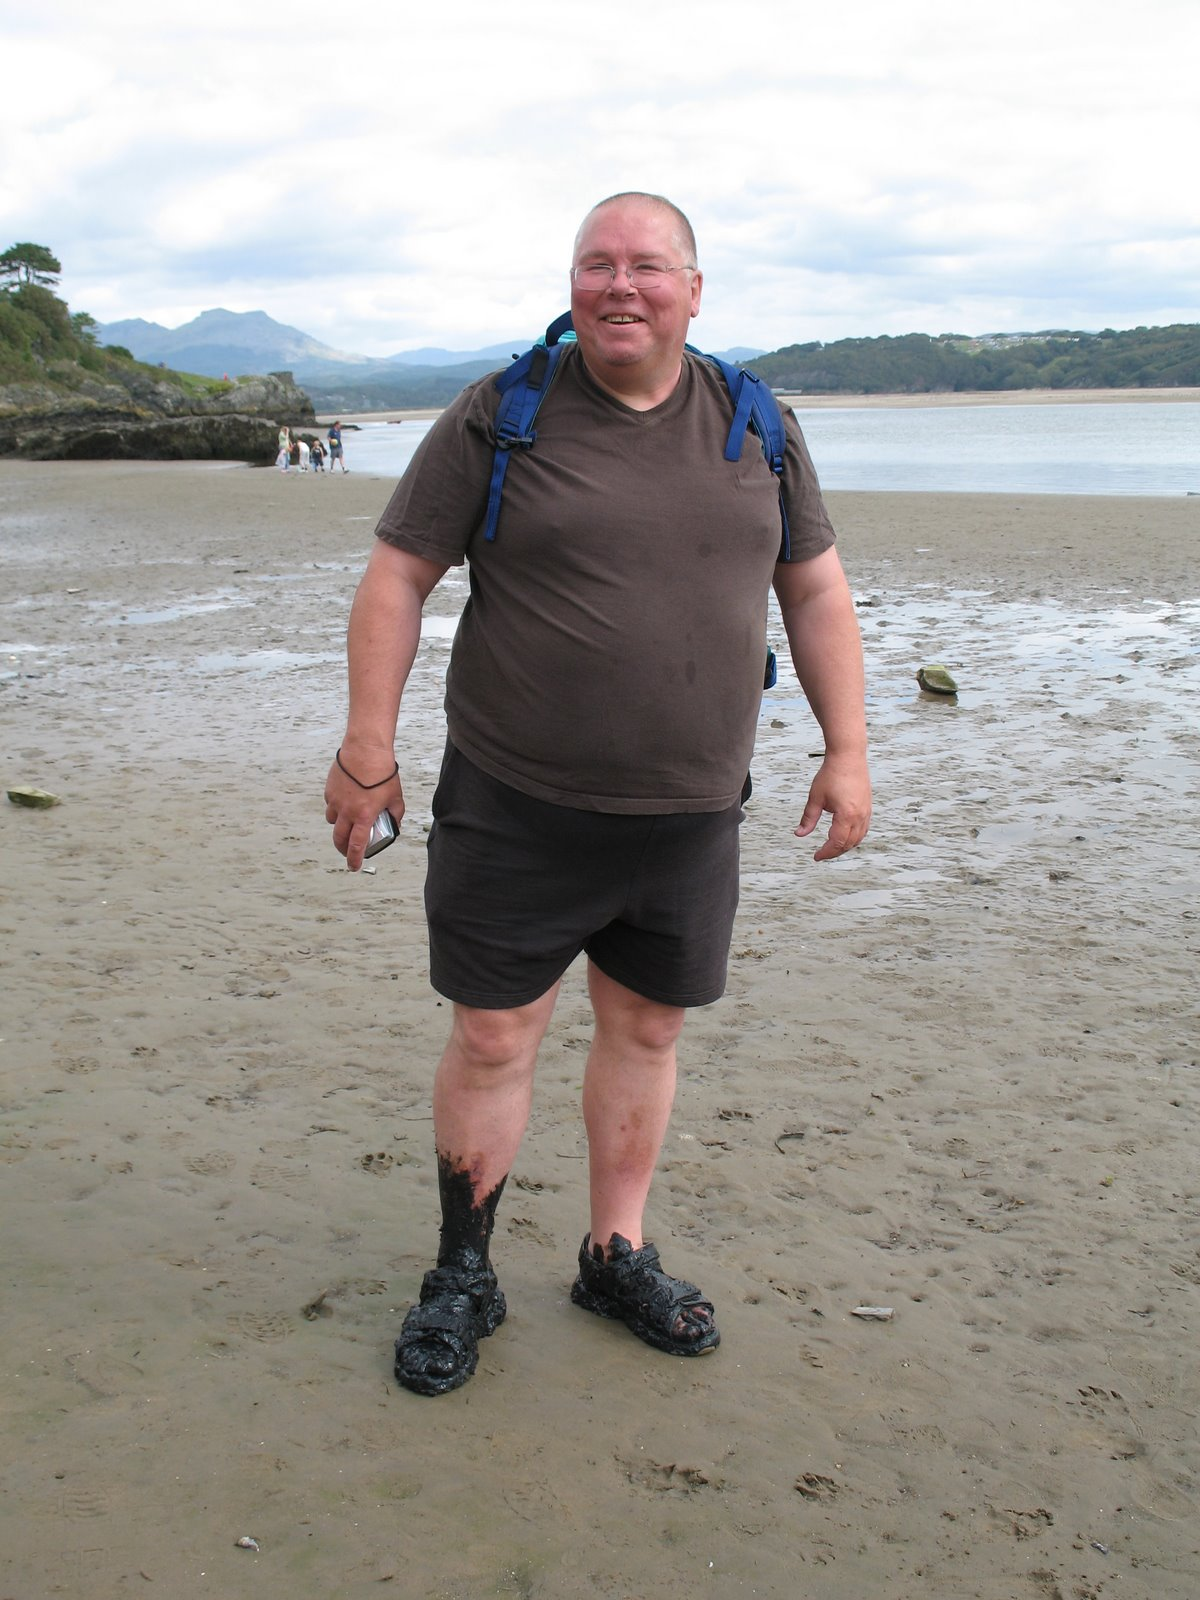 Nick on the beach near Porthmadog